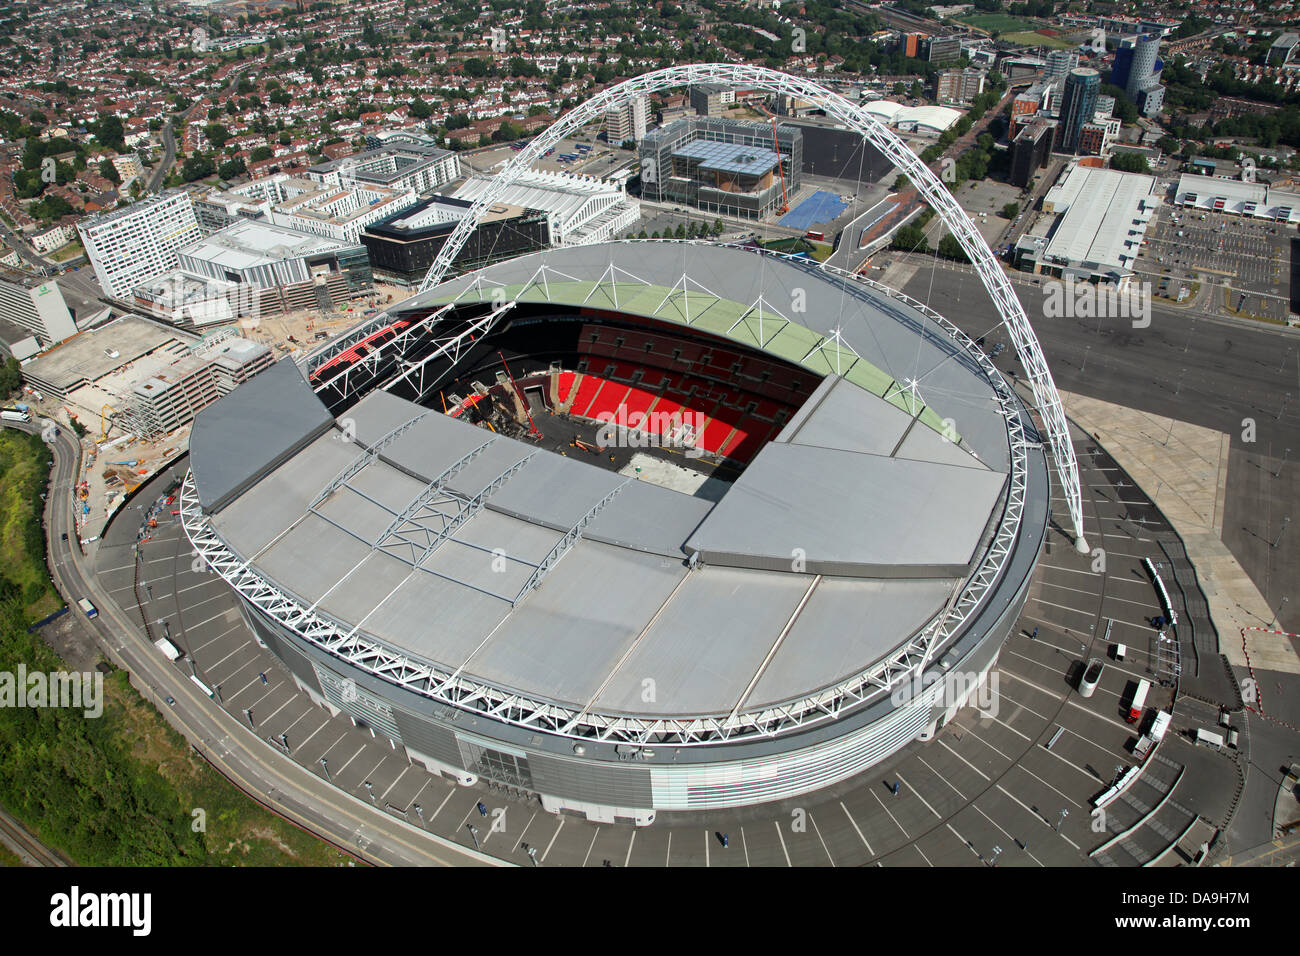 aerial view of Wembley Stadium - Stock Image